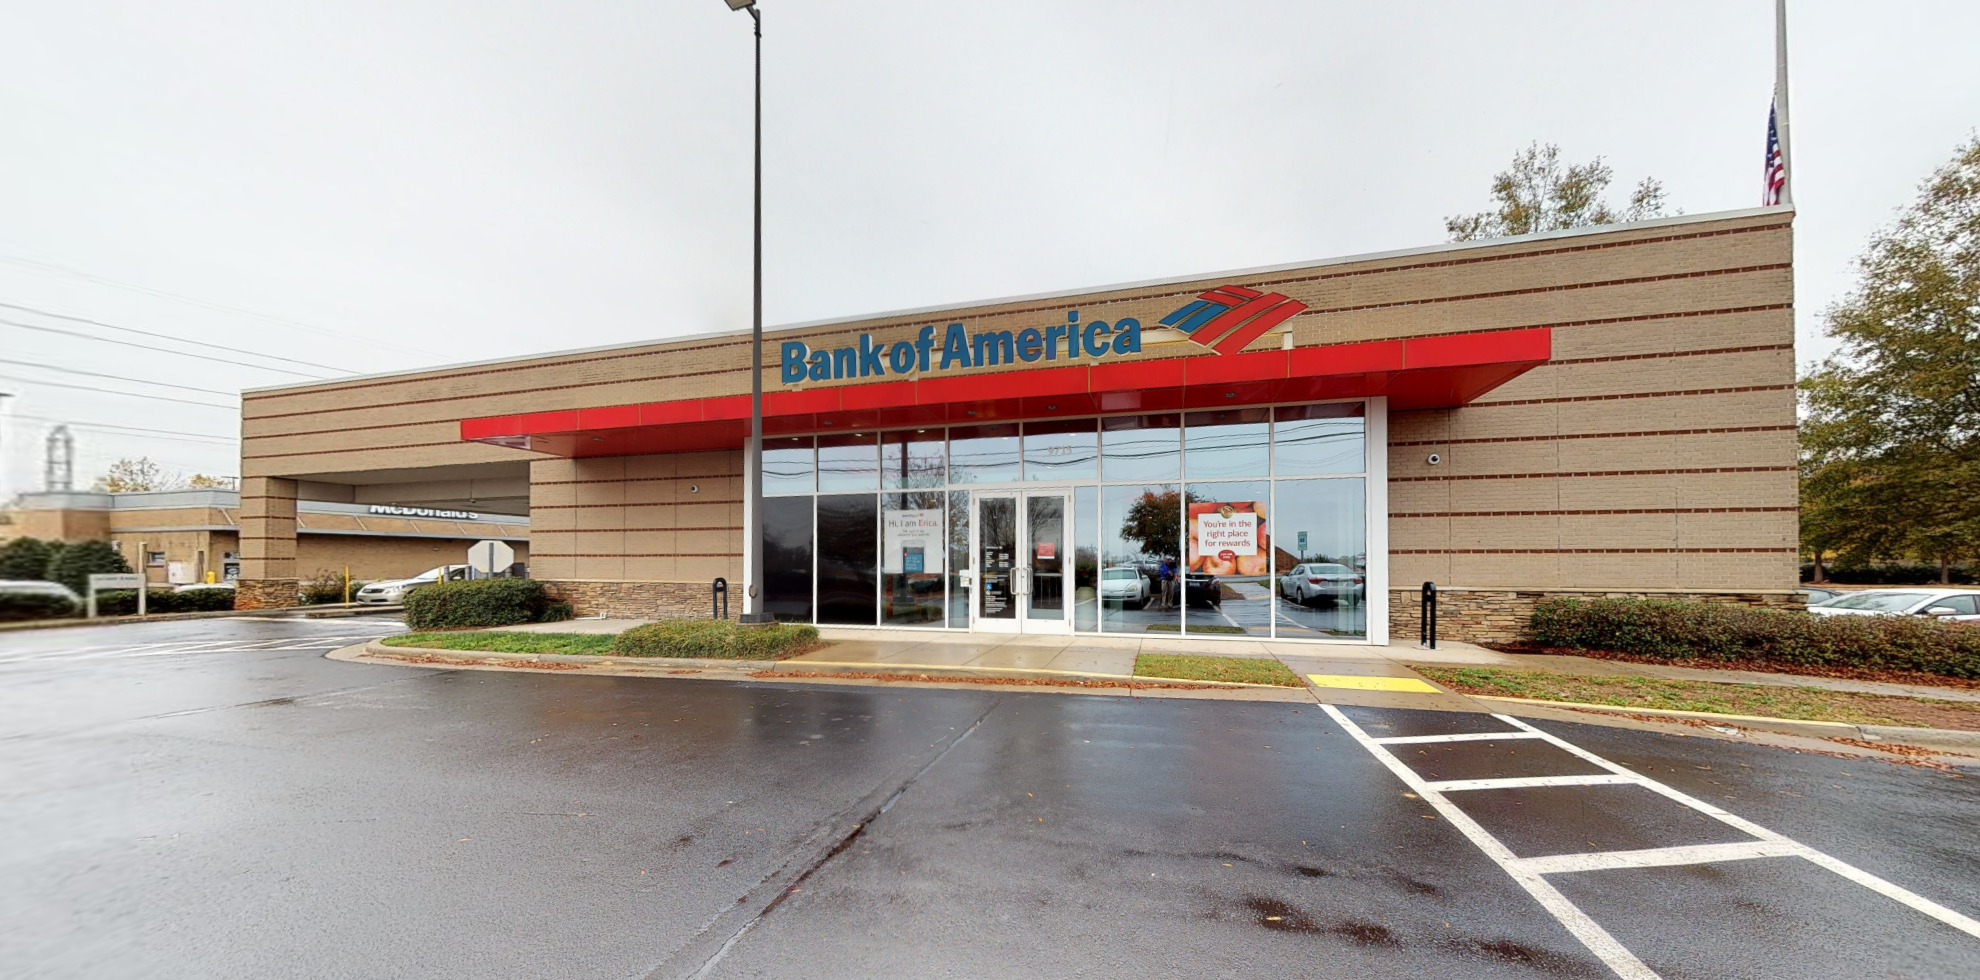 Bank of America financial center with drive-thru ATM and teller   9715 Callabridge Ct, Charlotte, NC 28216